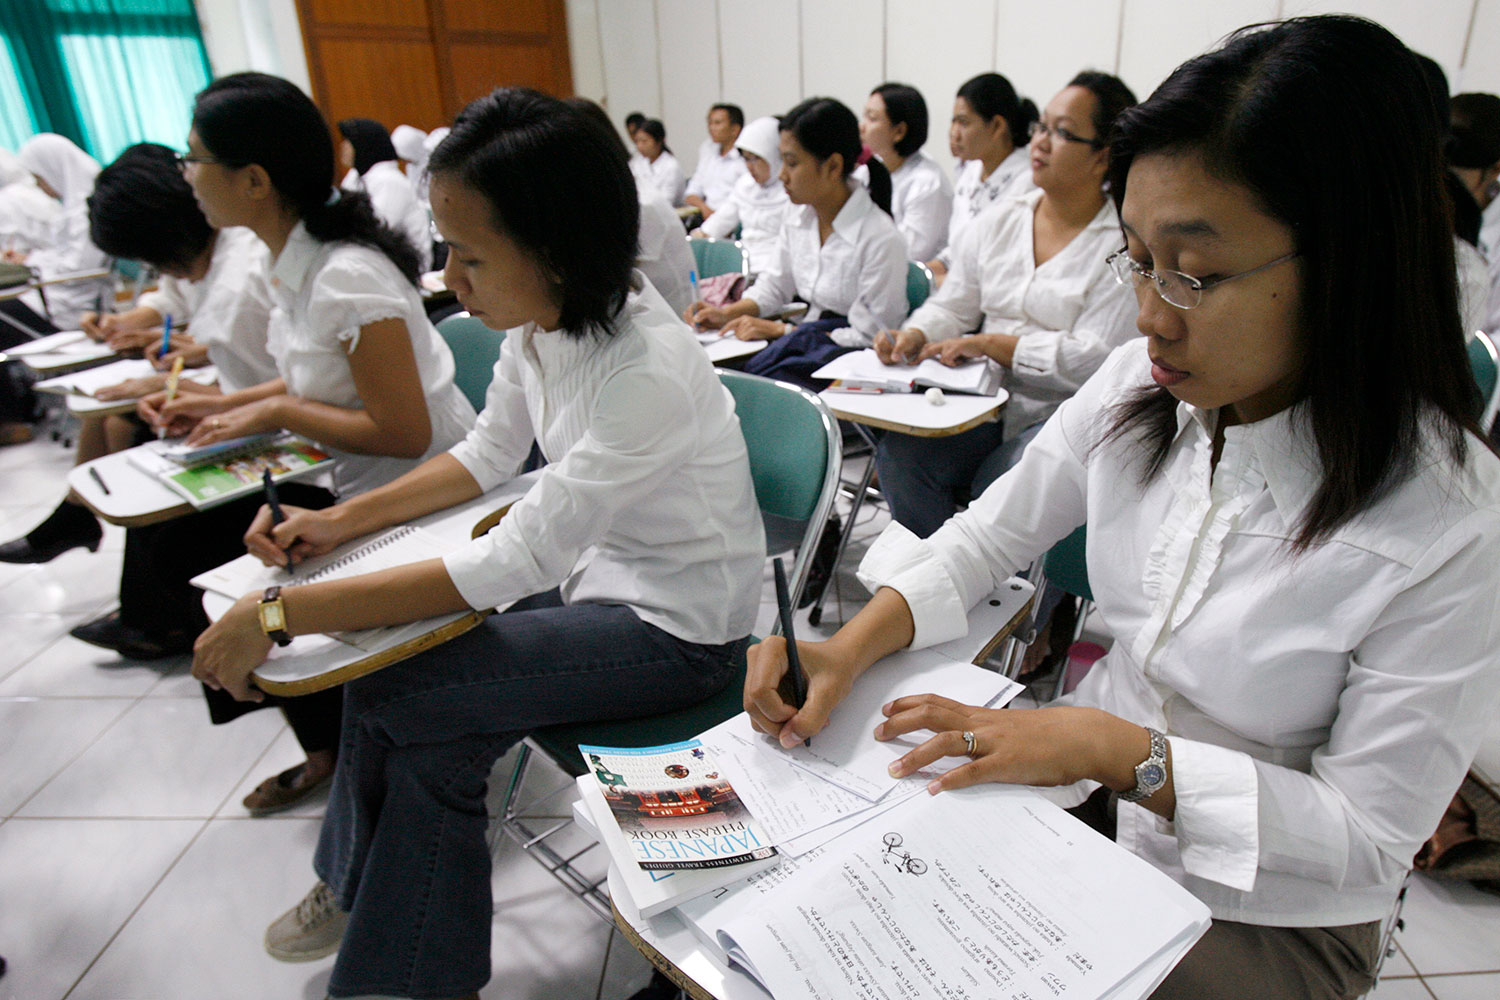 "Picture shows a classroom with several rows of nurses at desks, all with white shirts and black pants. They are taking notes and one of them in the foreground has a book on her desk titled, ""Japanese Phrase Book."""